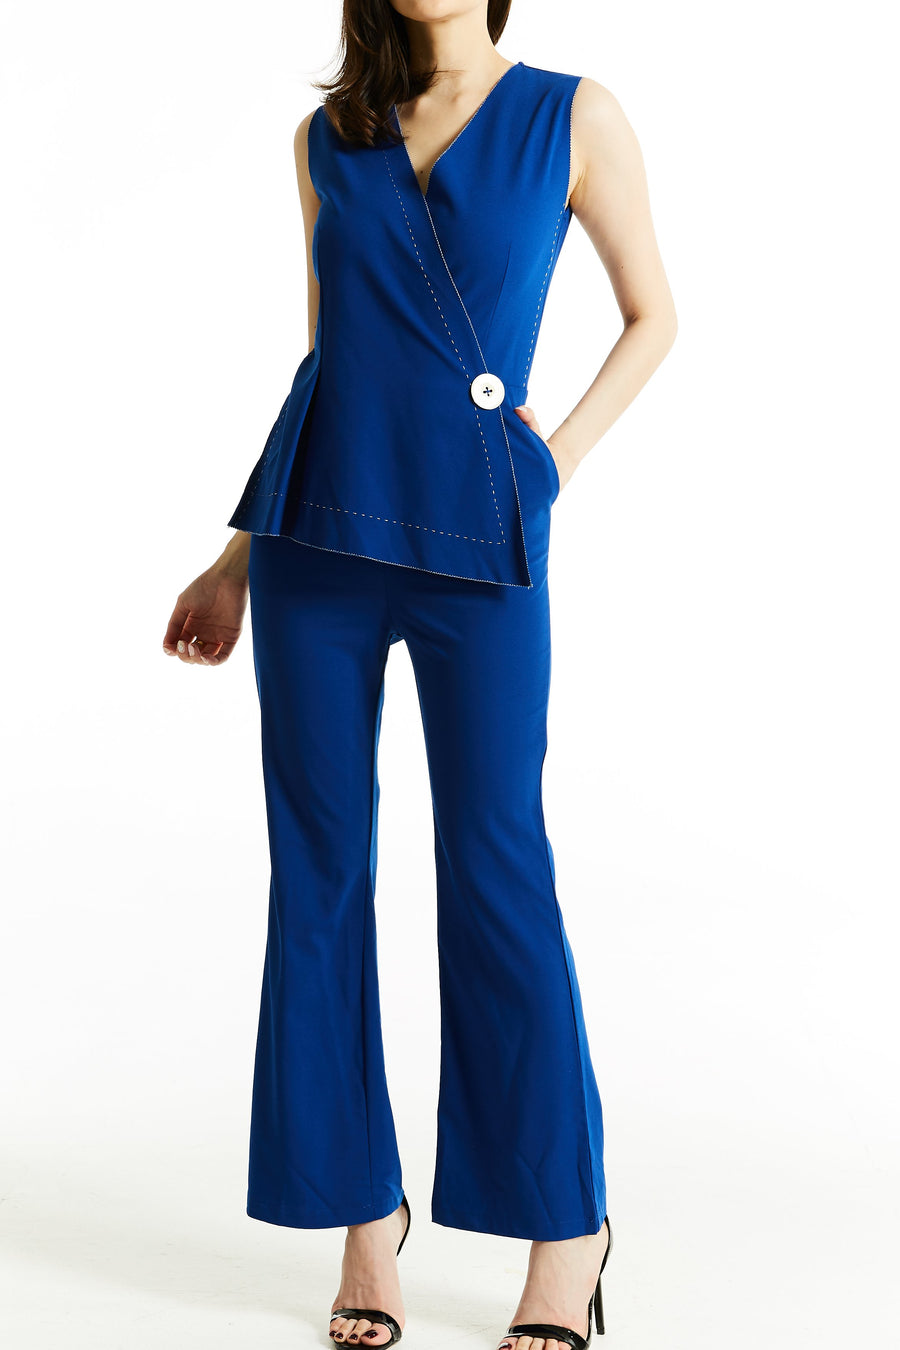 Fake Button Jumpsuit 0765 Red / S Jumpsuits